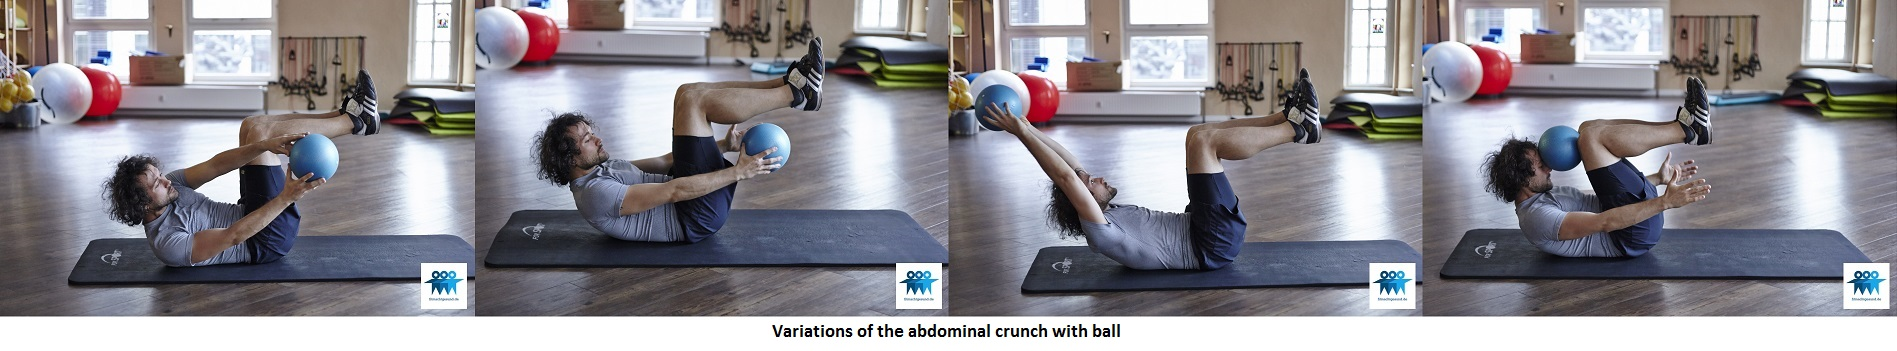 Ab crunch with ball